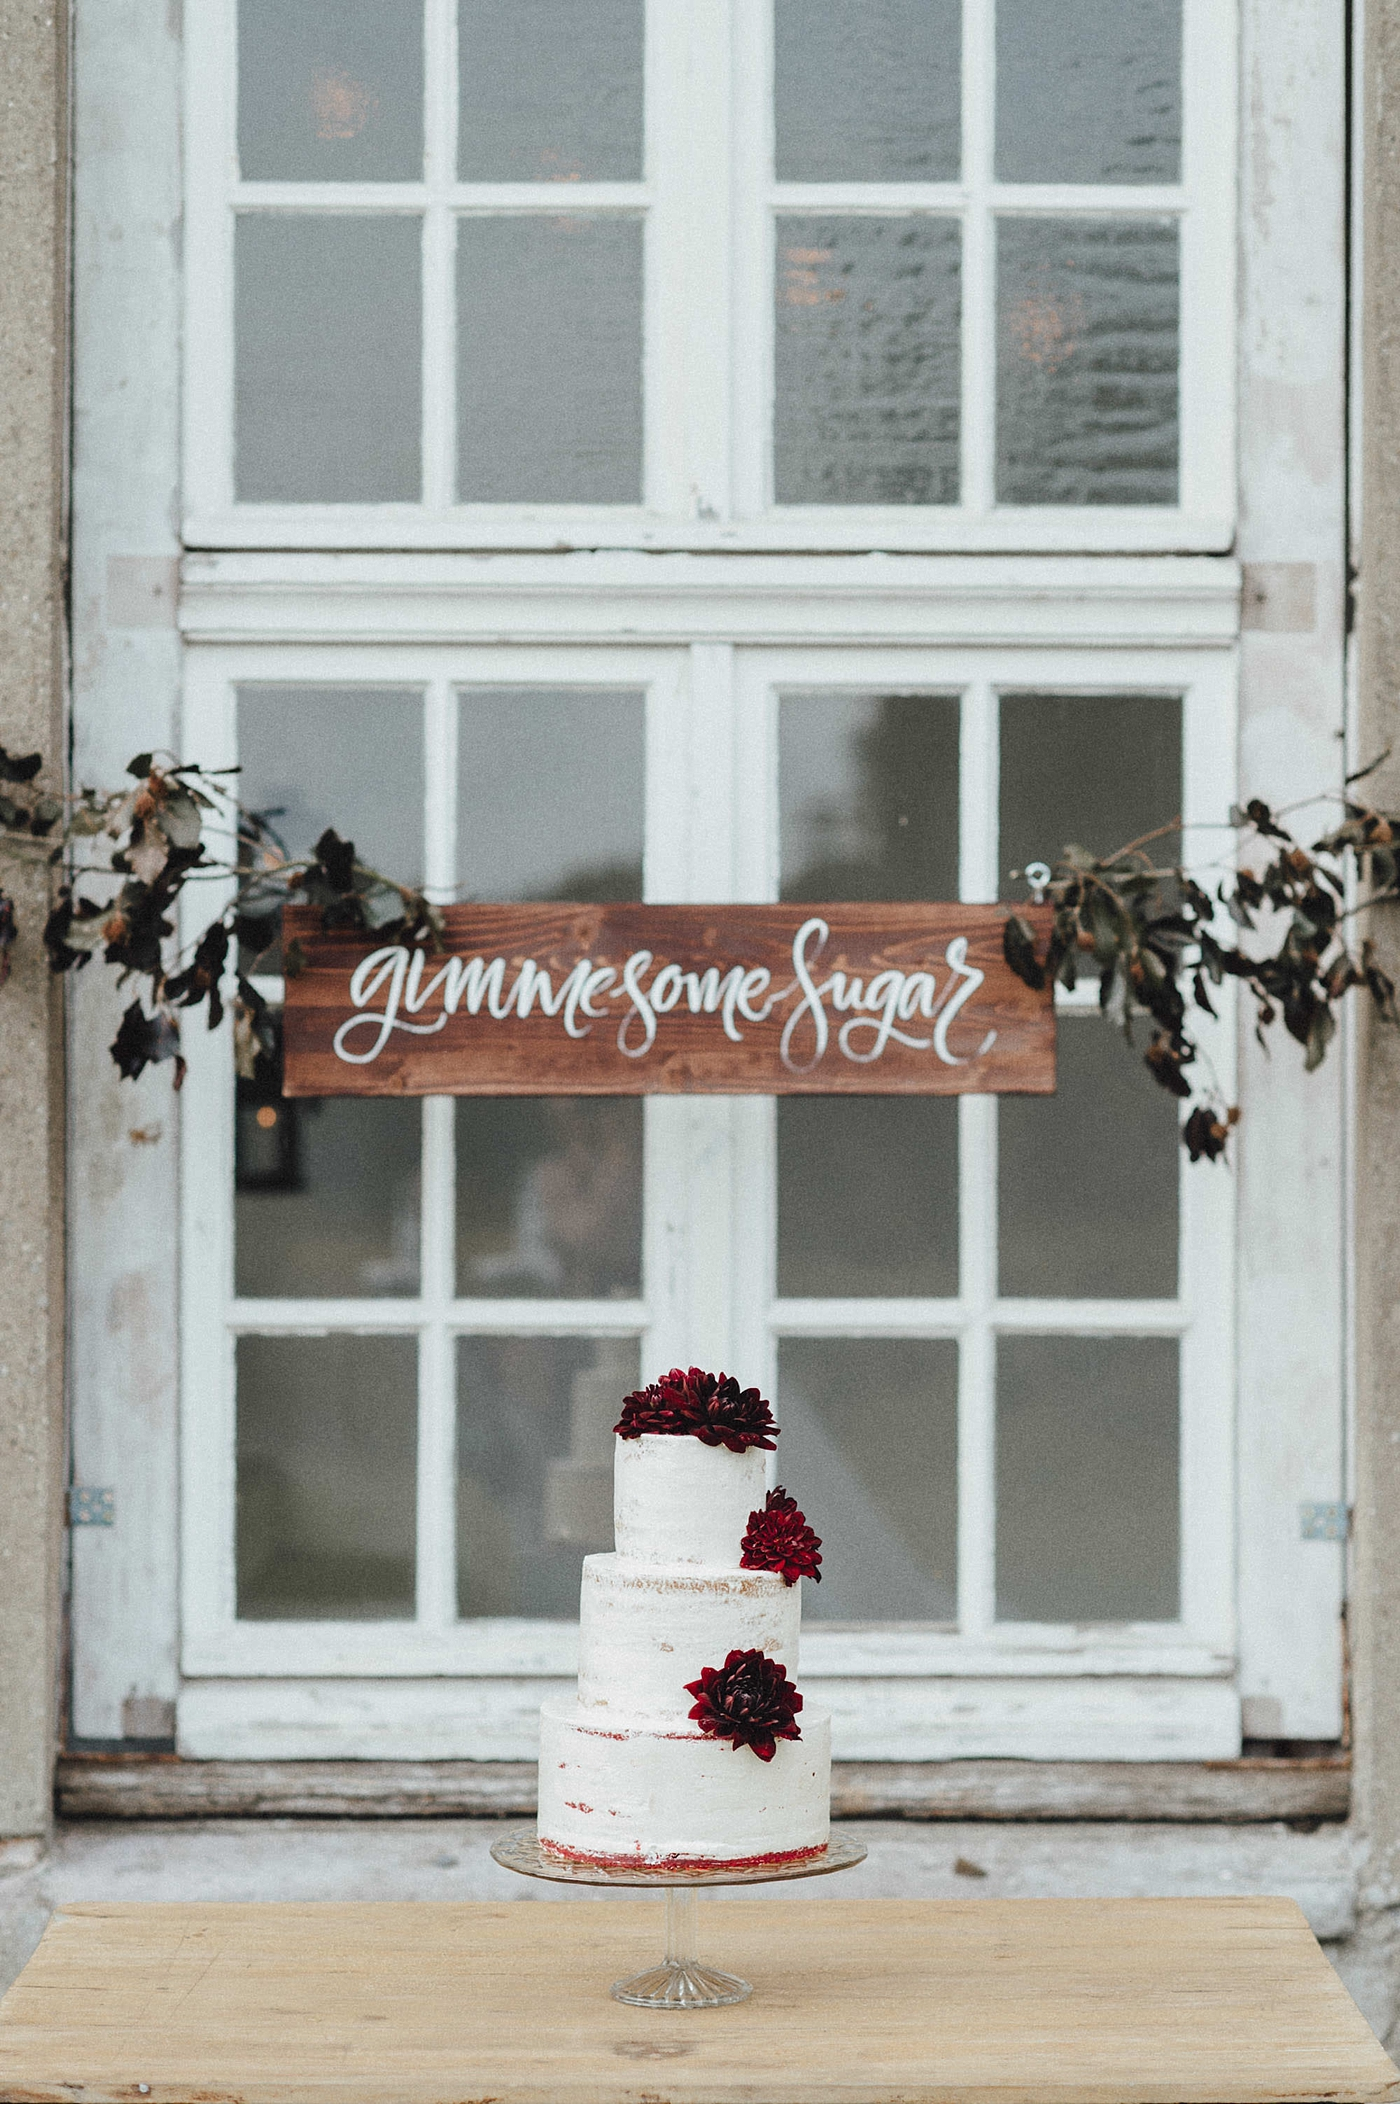 urban-elopement-wedding-158 Merve & Nils emotionales Elopement - Wedding Wesel & Schottlandurban elopement wedding 158 1